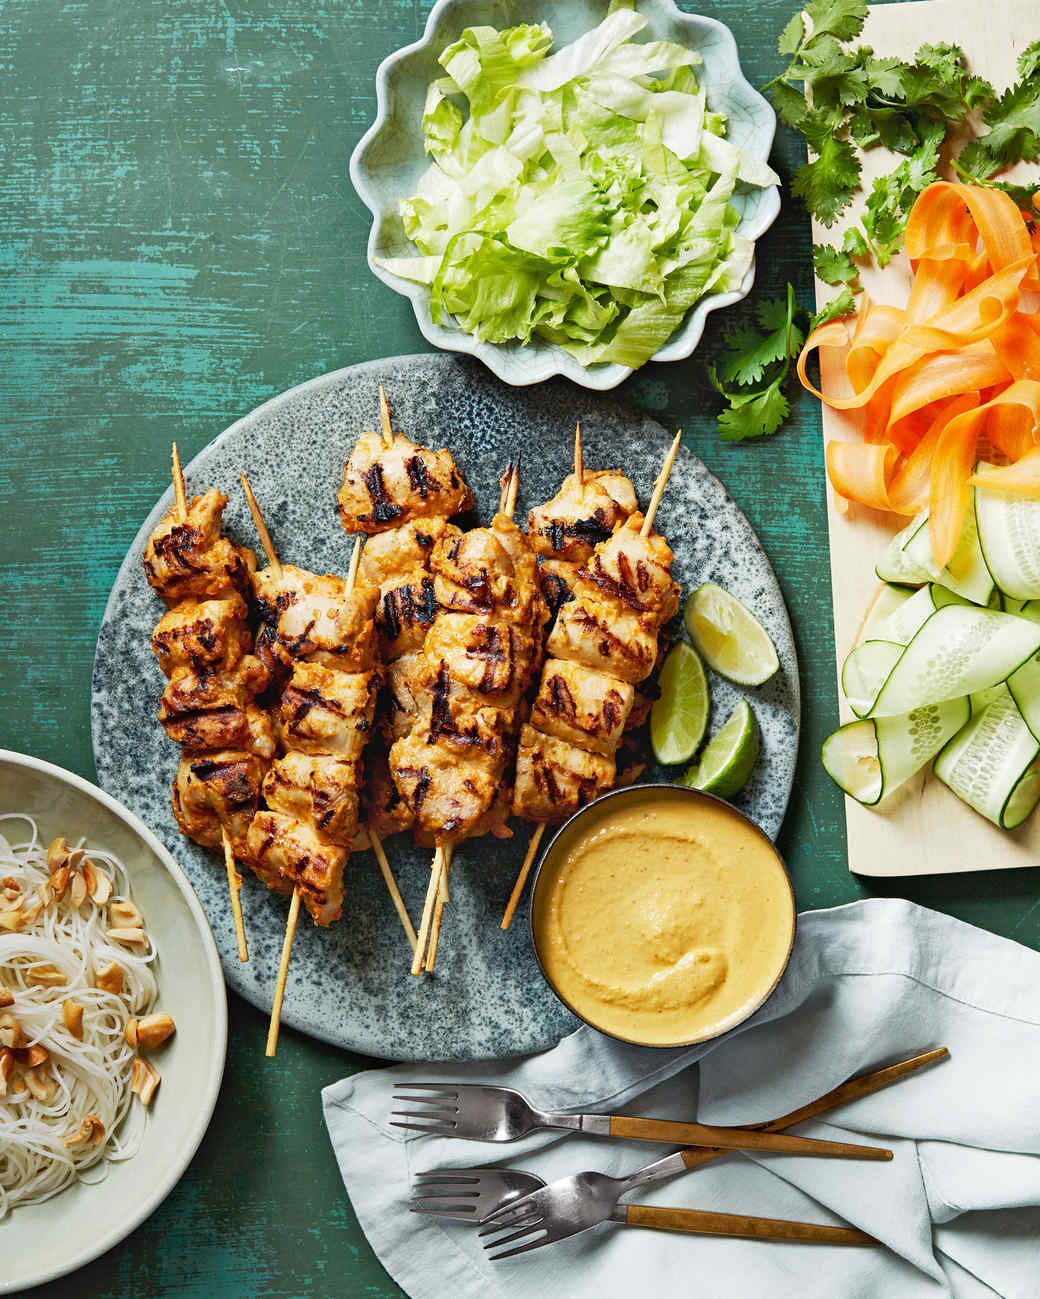 Best Kebab Recipes Our Favorite Grilled Foods on a Stick Martha